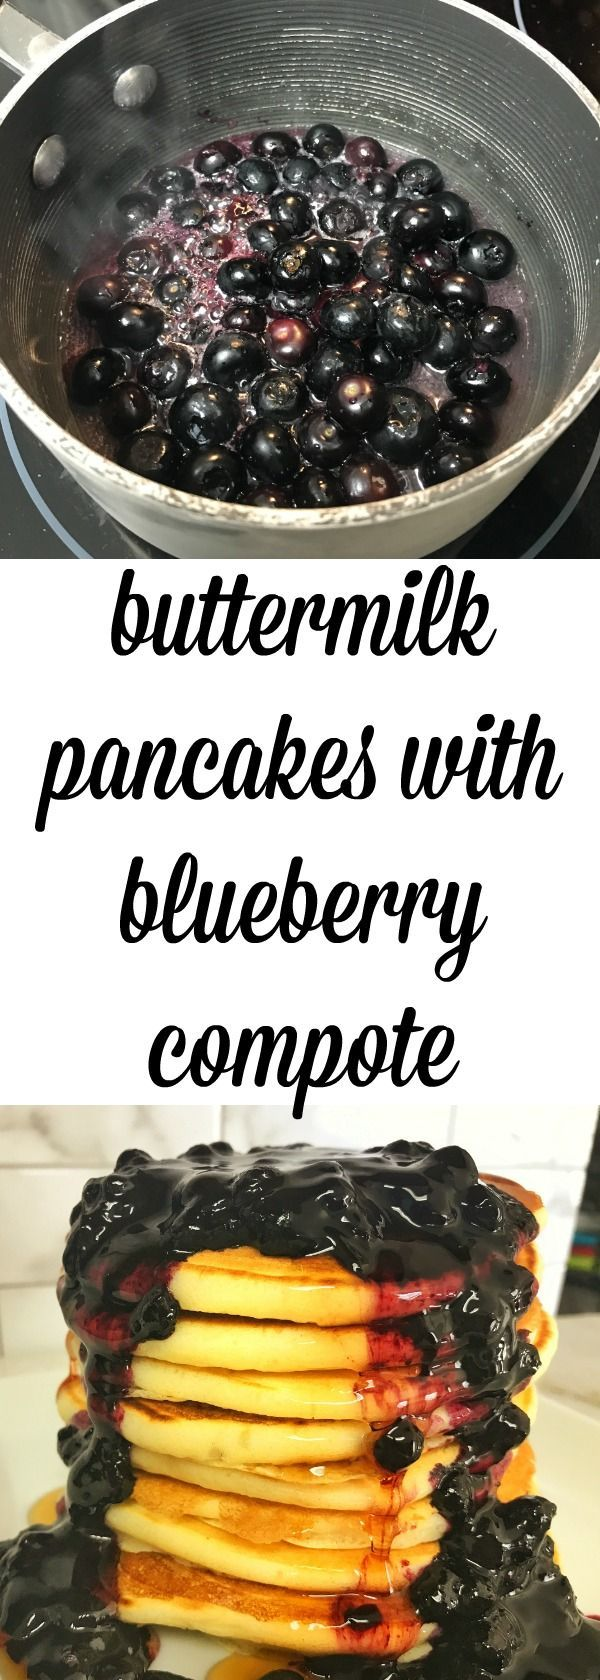 quick and easy pancake recipe made with pantry staples and a recipe for making your own buttermilk.  Also includes a super easy recipe for making a blueberry compote topping.